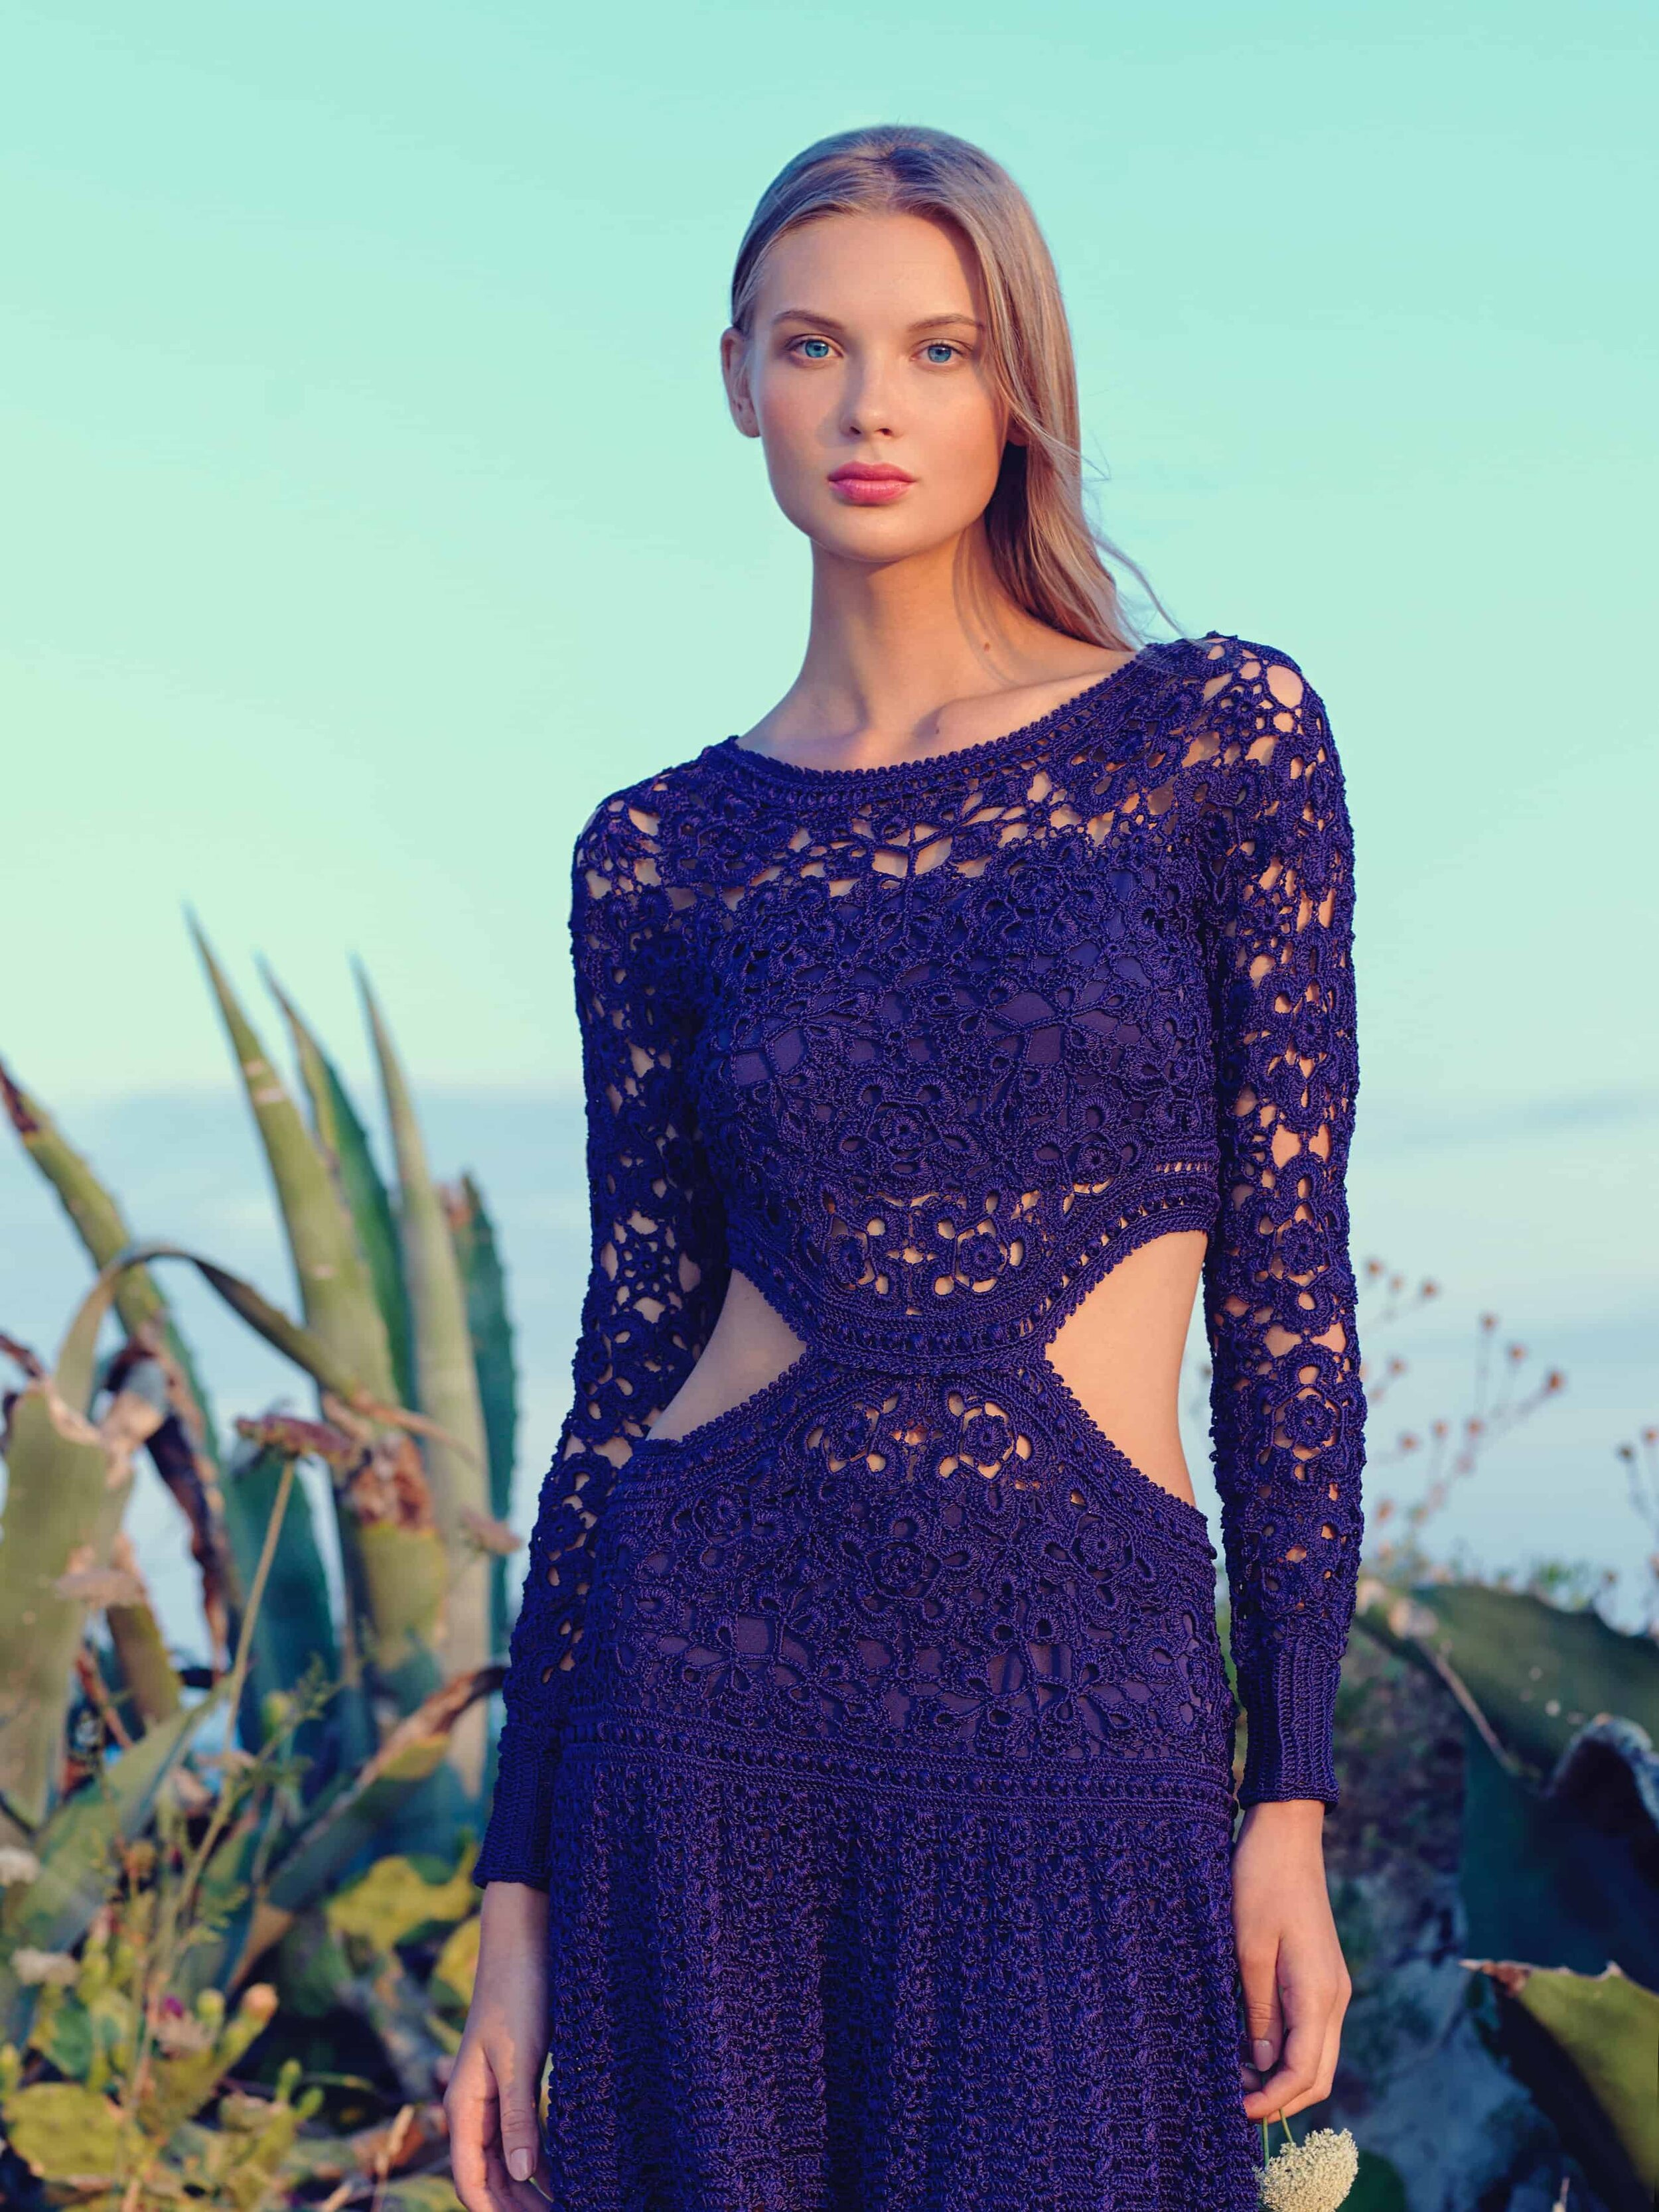 These are some of the best spring outfits for 2020. Crochet is everywhere, from vests to dresses to shoes to accessories. #springtrends #2020fashion #springdresses #purple #dress #longsleevedress #instyle2020 #bohofashion #bohemian #bohemianstyle